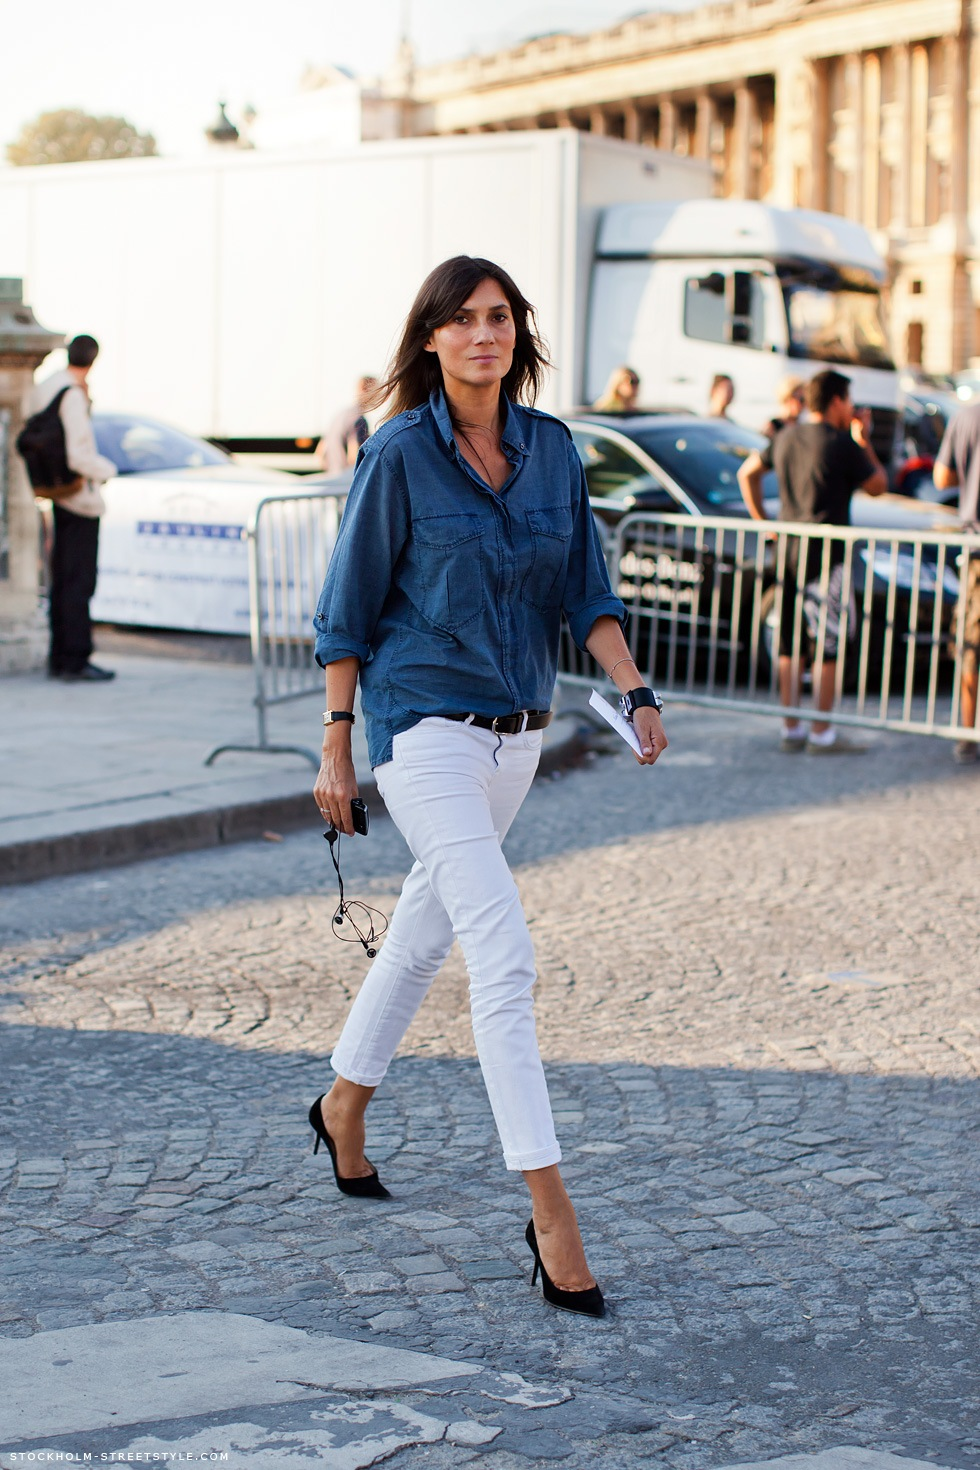 stocklholm White Denim For Summer: 12 Sleek Pieces To Buy and Wear Now